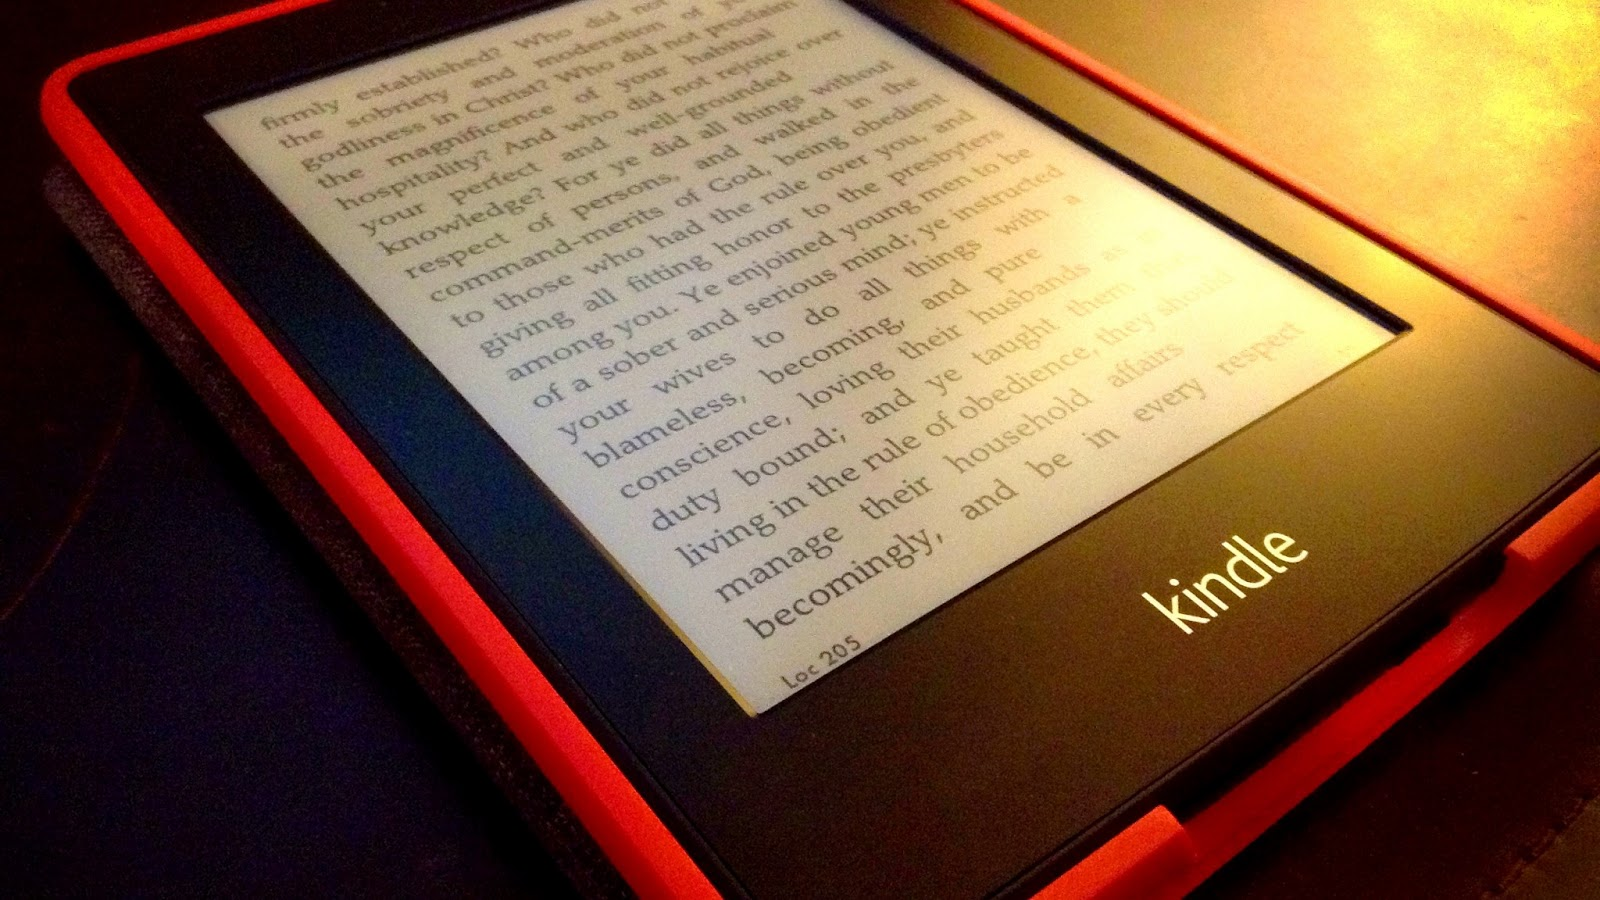 Bring the Books: Pulling the Paperwhite Out From Under the Bus